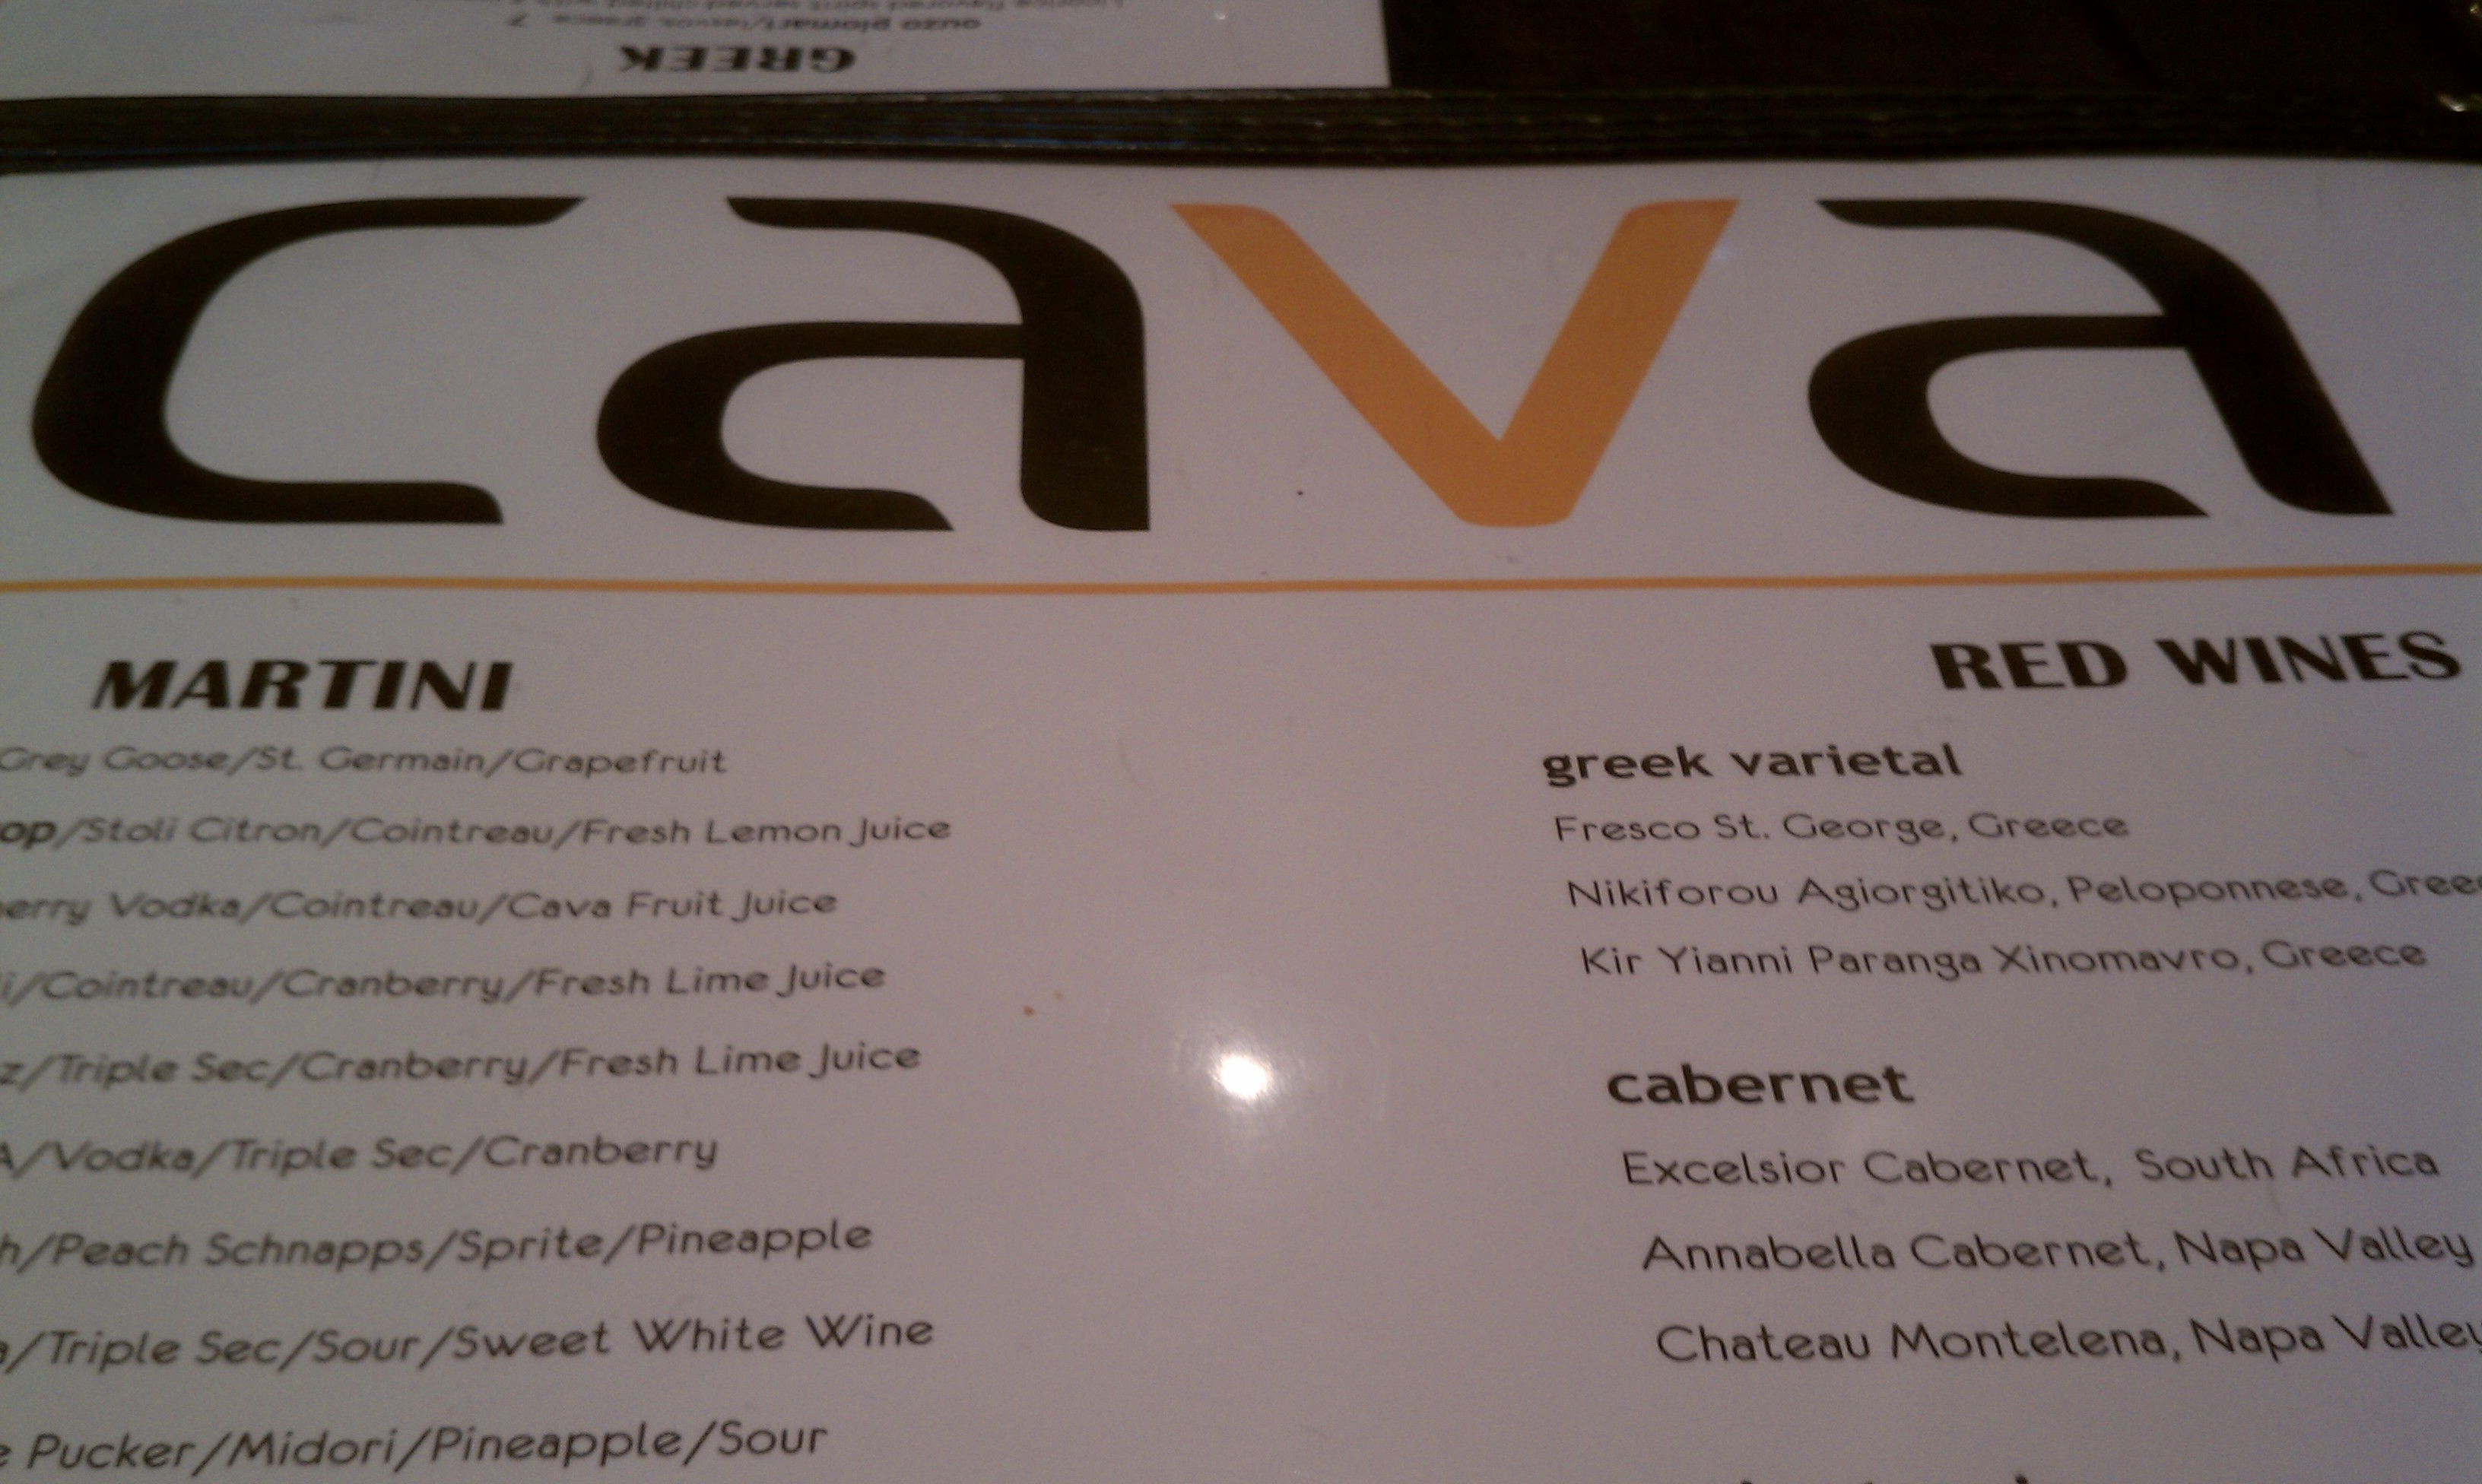 Cava Mezze Greek Restaurant In Rockville Md The Foodie Realtor